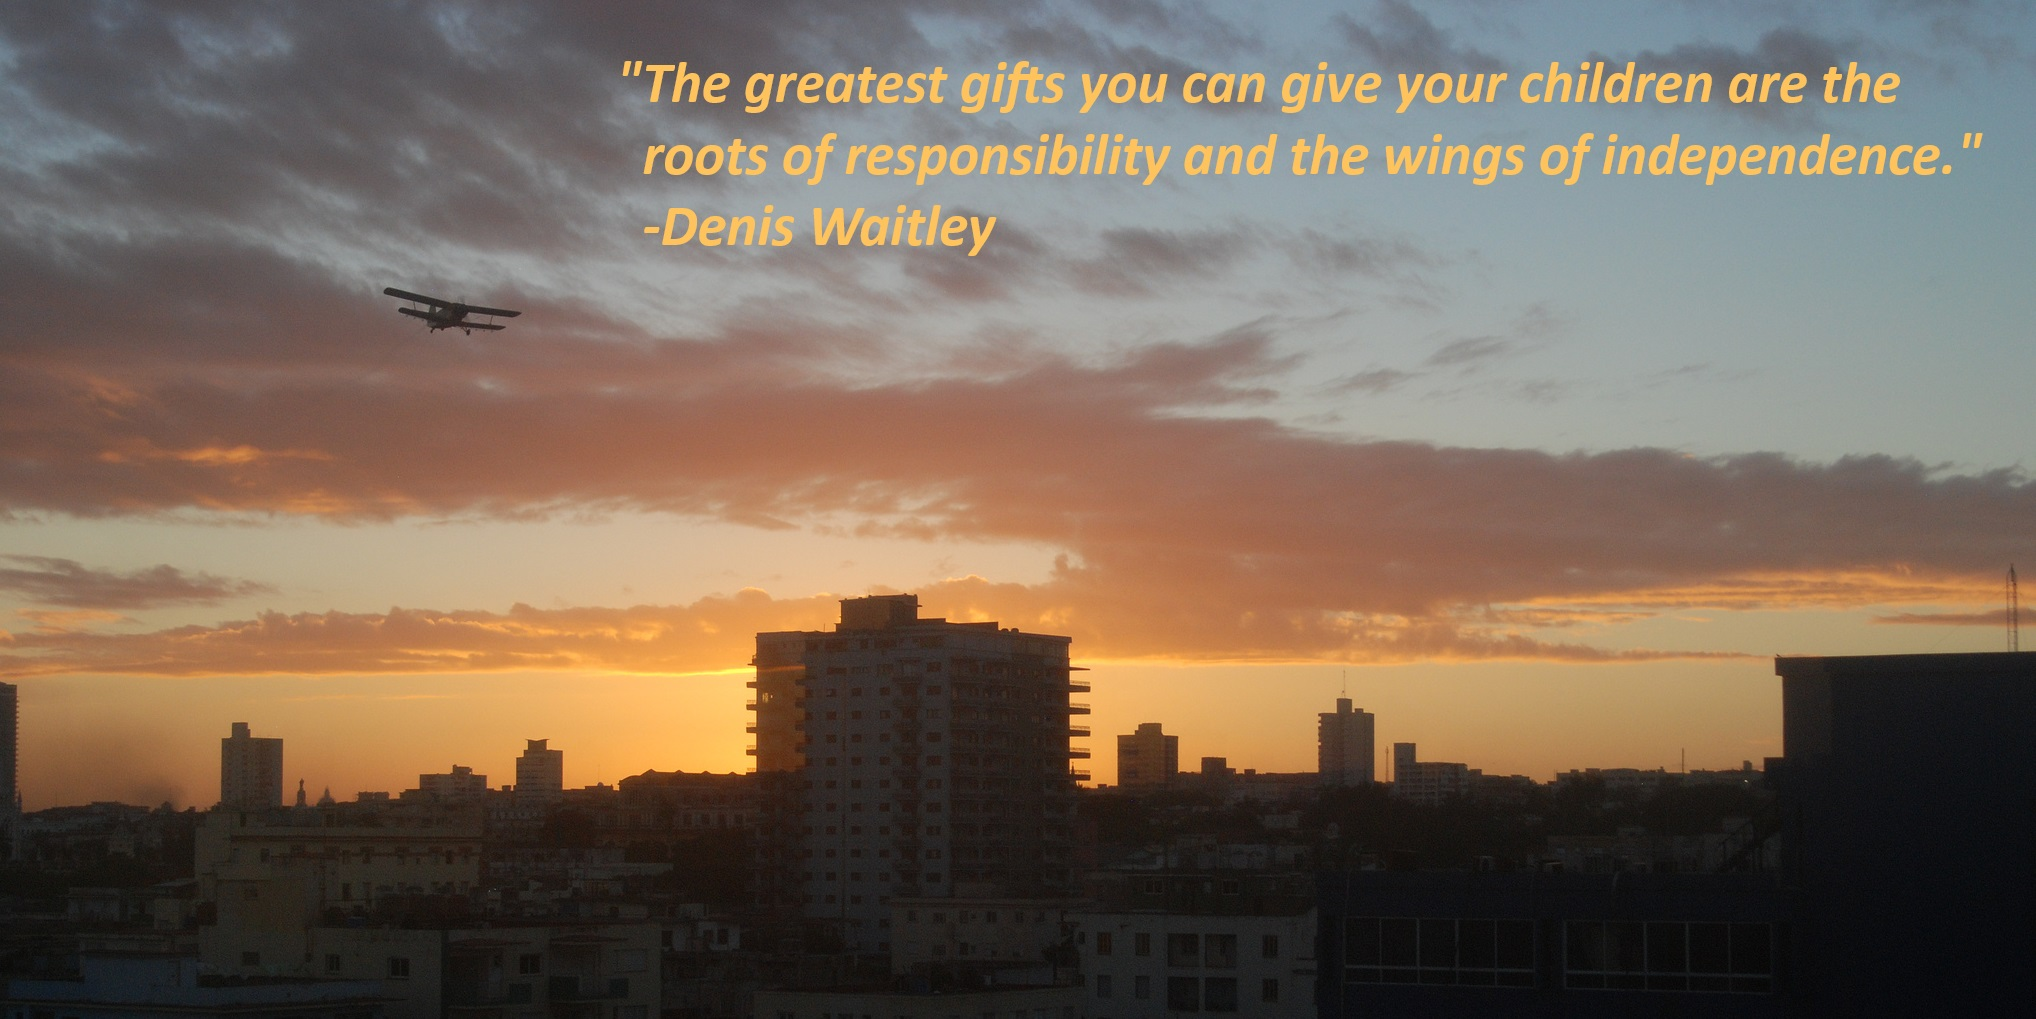 Denis Waitley Quote the greatest gifts you can give your children are the roots of responsibility and the wings of independence